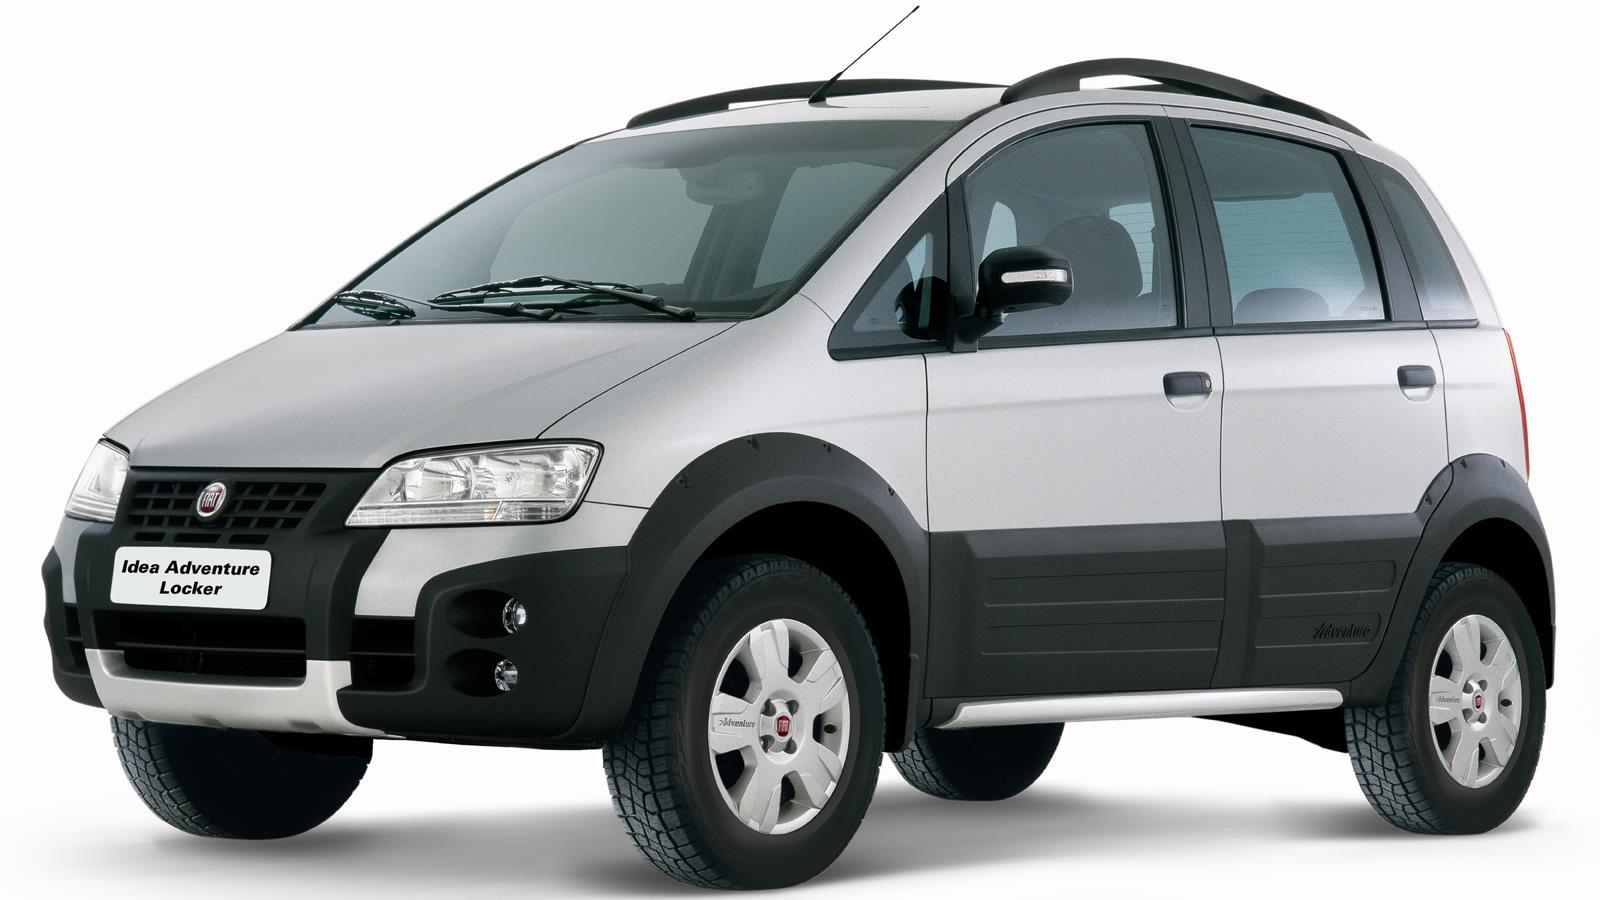 Fiat idea adventure todo un mundo de sensaciones for Repuestos fiat idea adventure precios